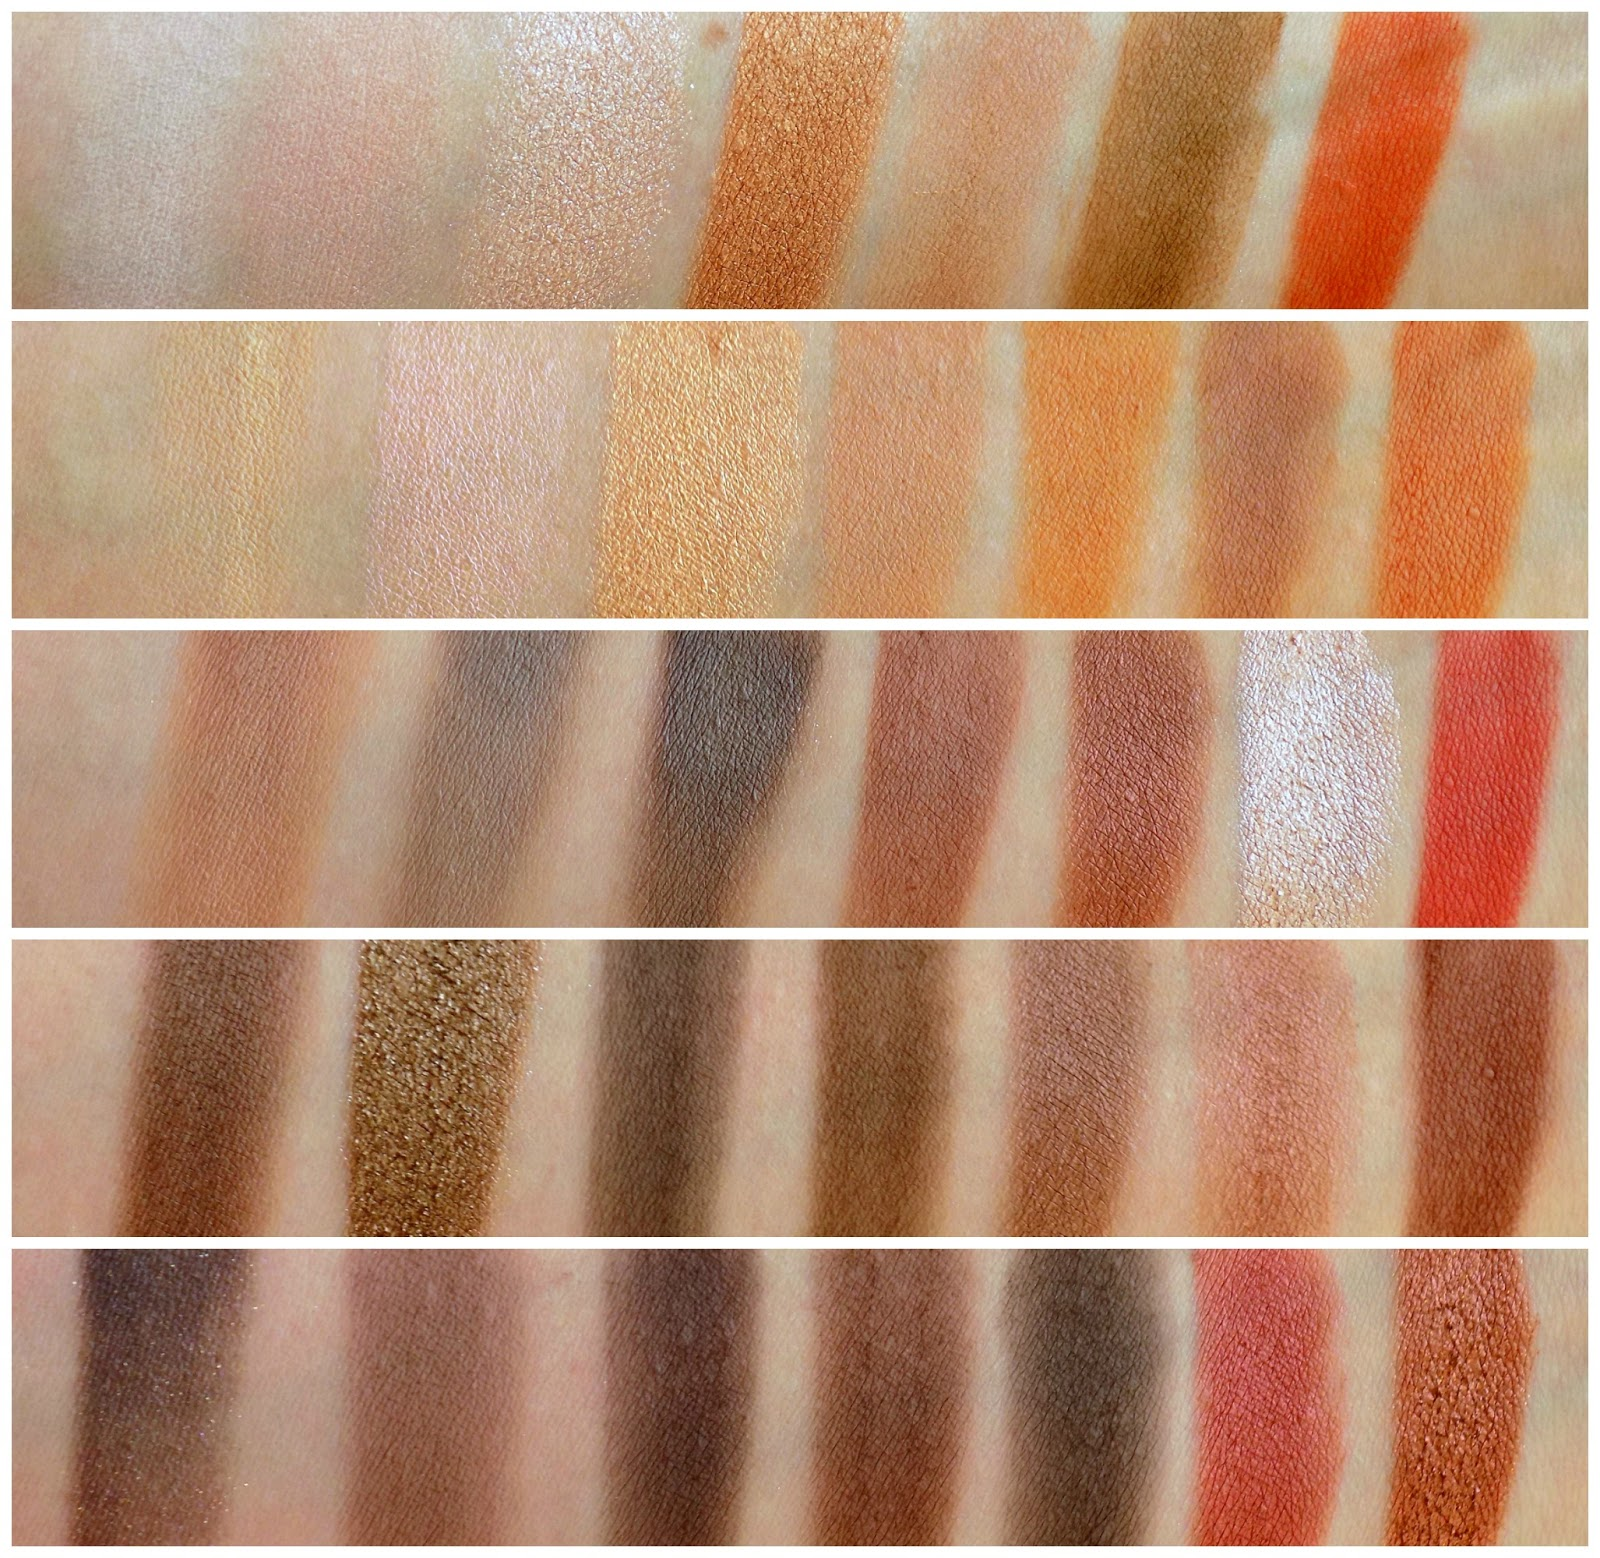 Morphe Brushes 35O palette swatches